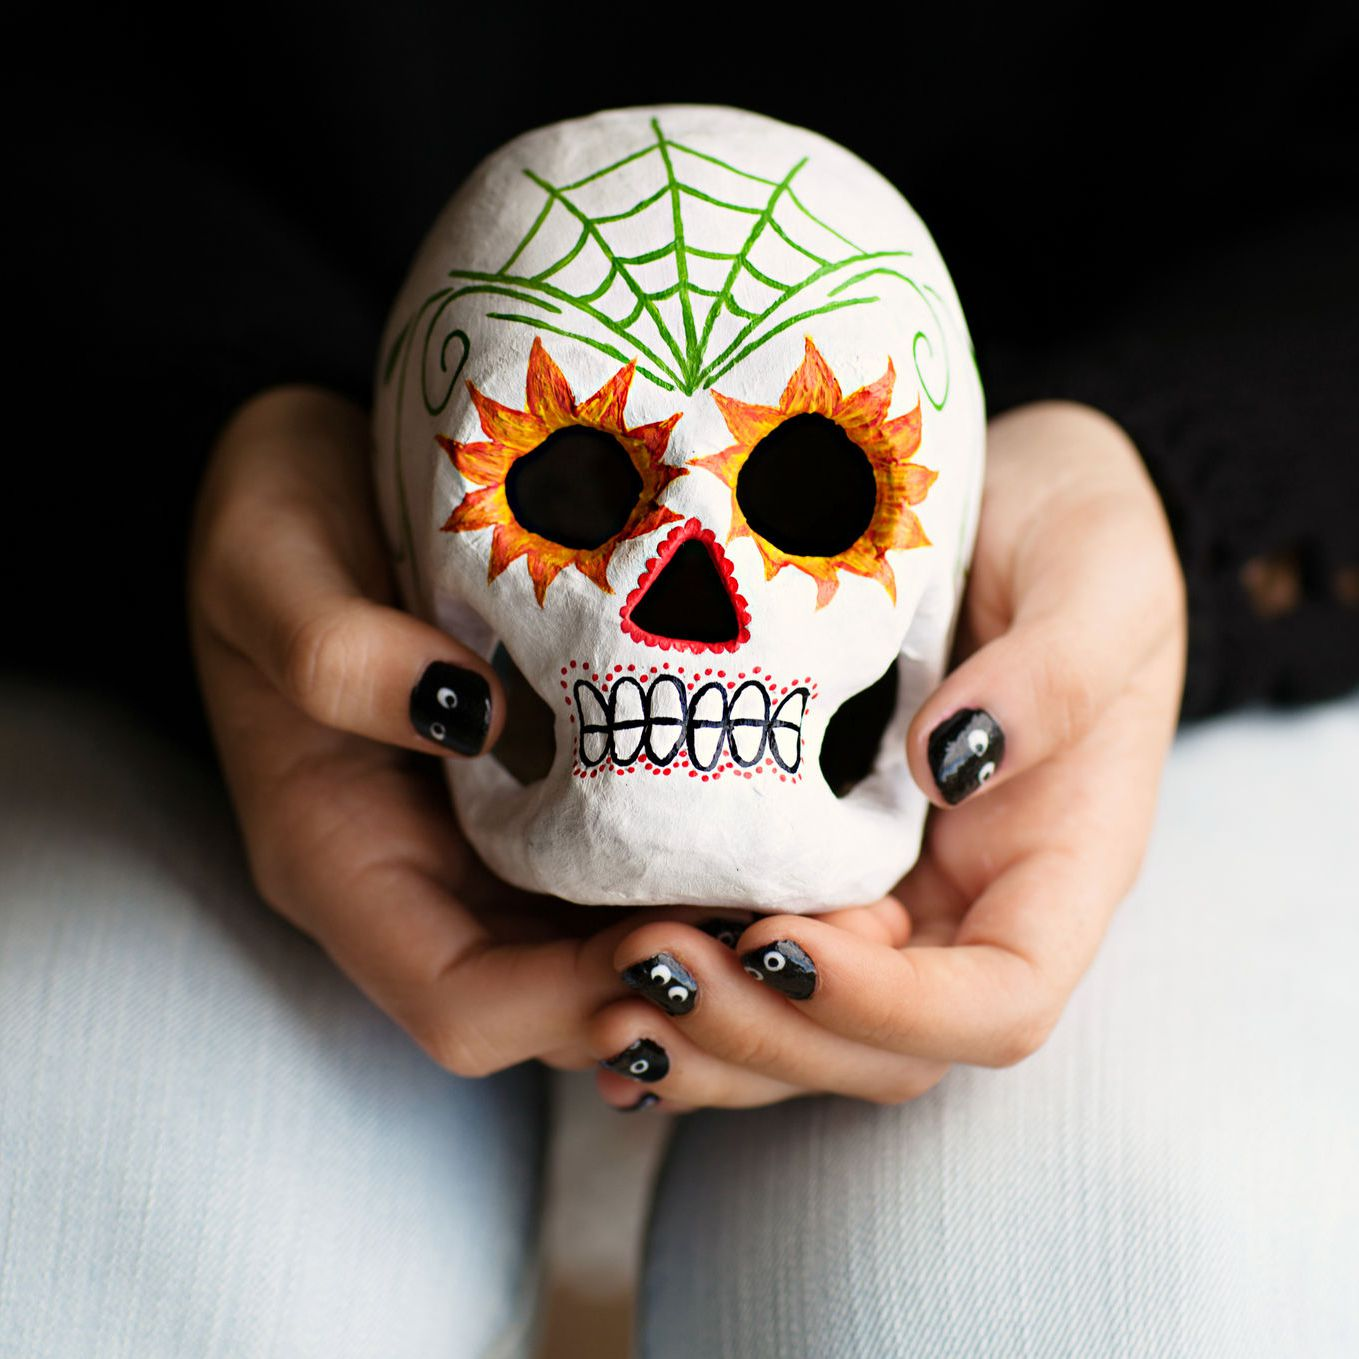 This Sugar Skull is a great decor for the coming Day of the Dead at the end of October